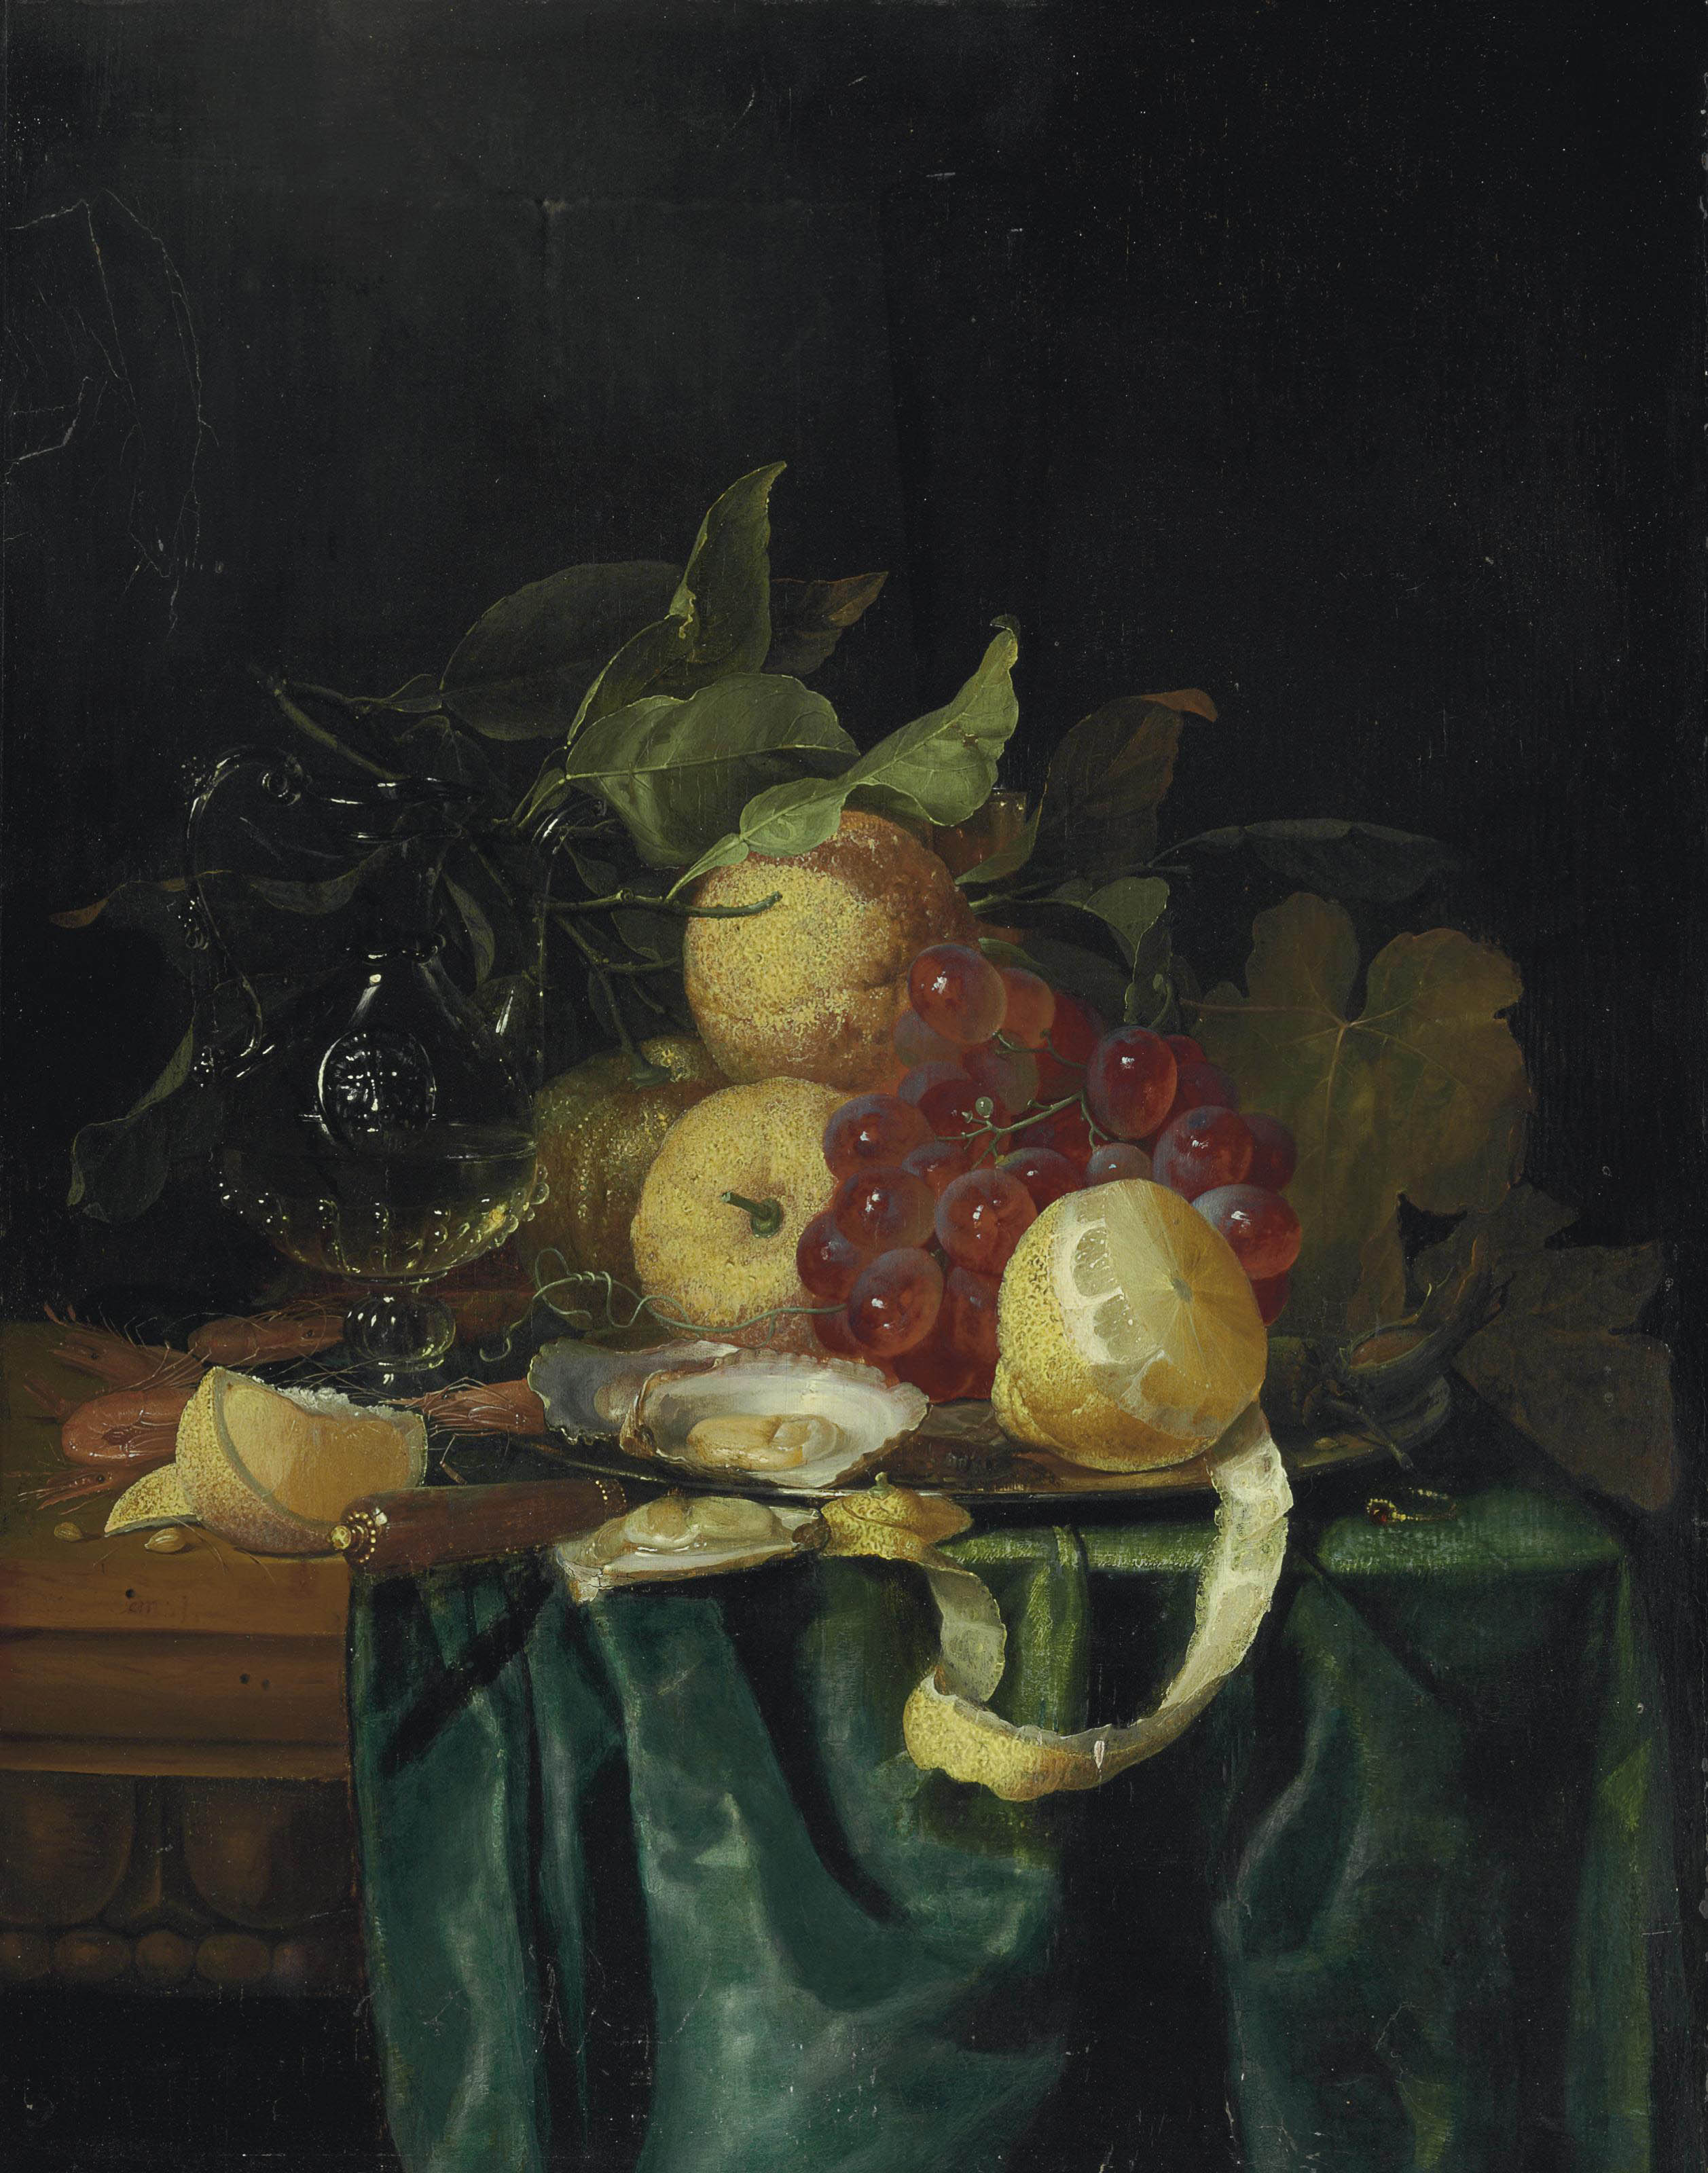 A Venetian jug, façon de Venise glass, lemons, grapes, oysters, shrimp and cobnuts on a silver platter and a knife and ring on a partially draped table